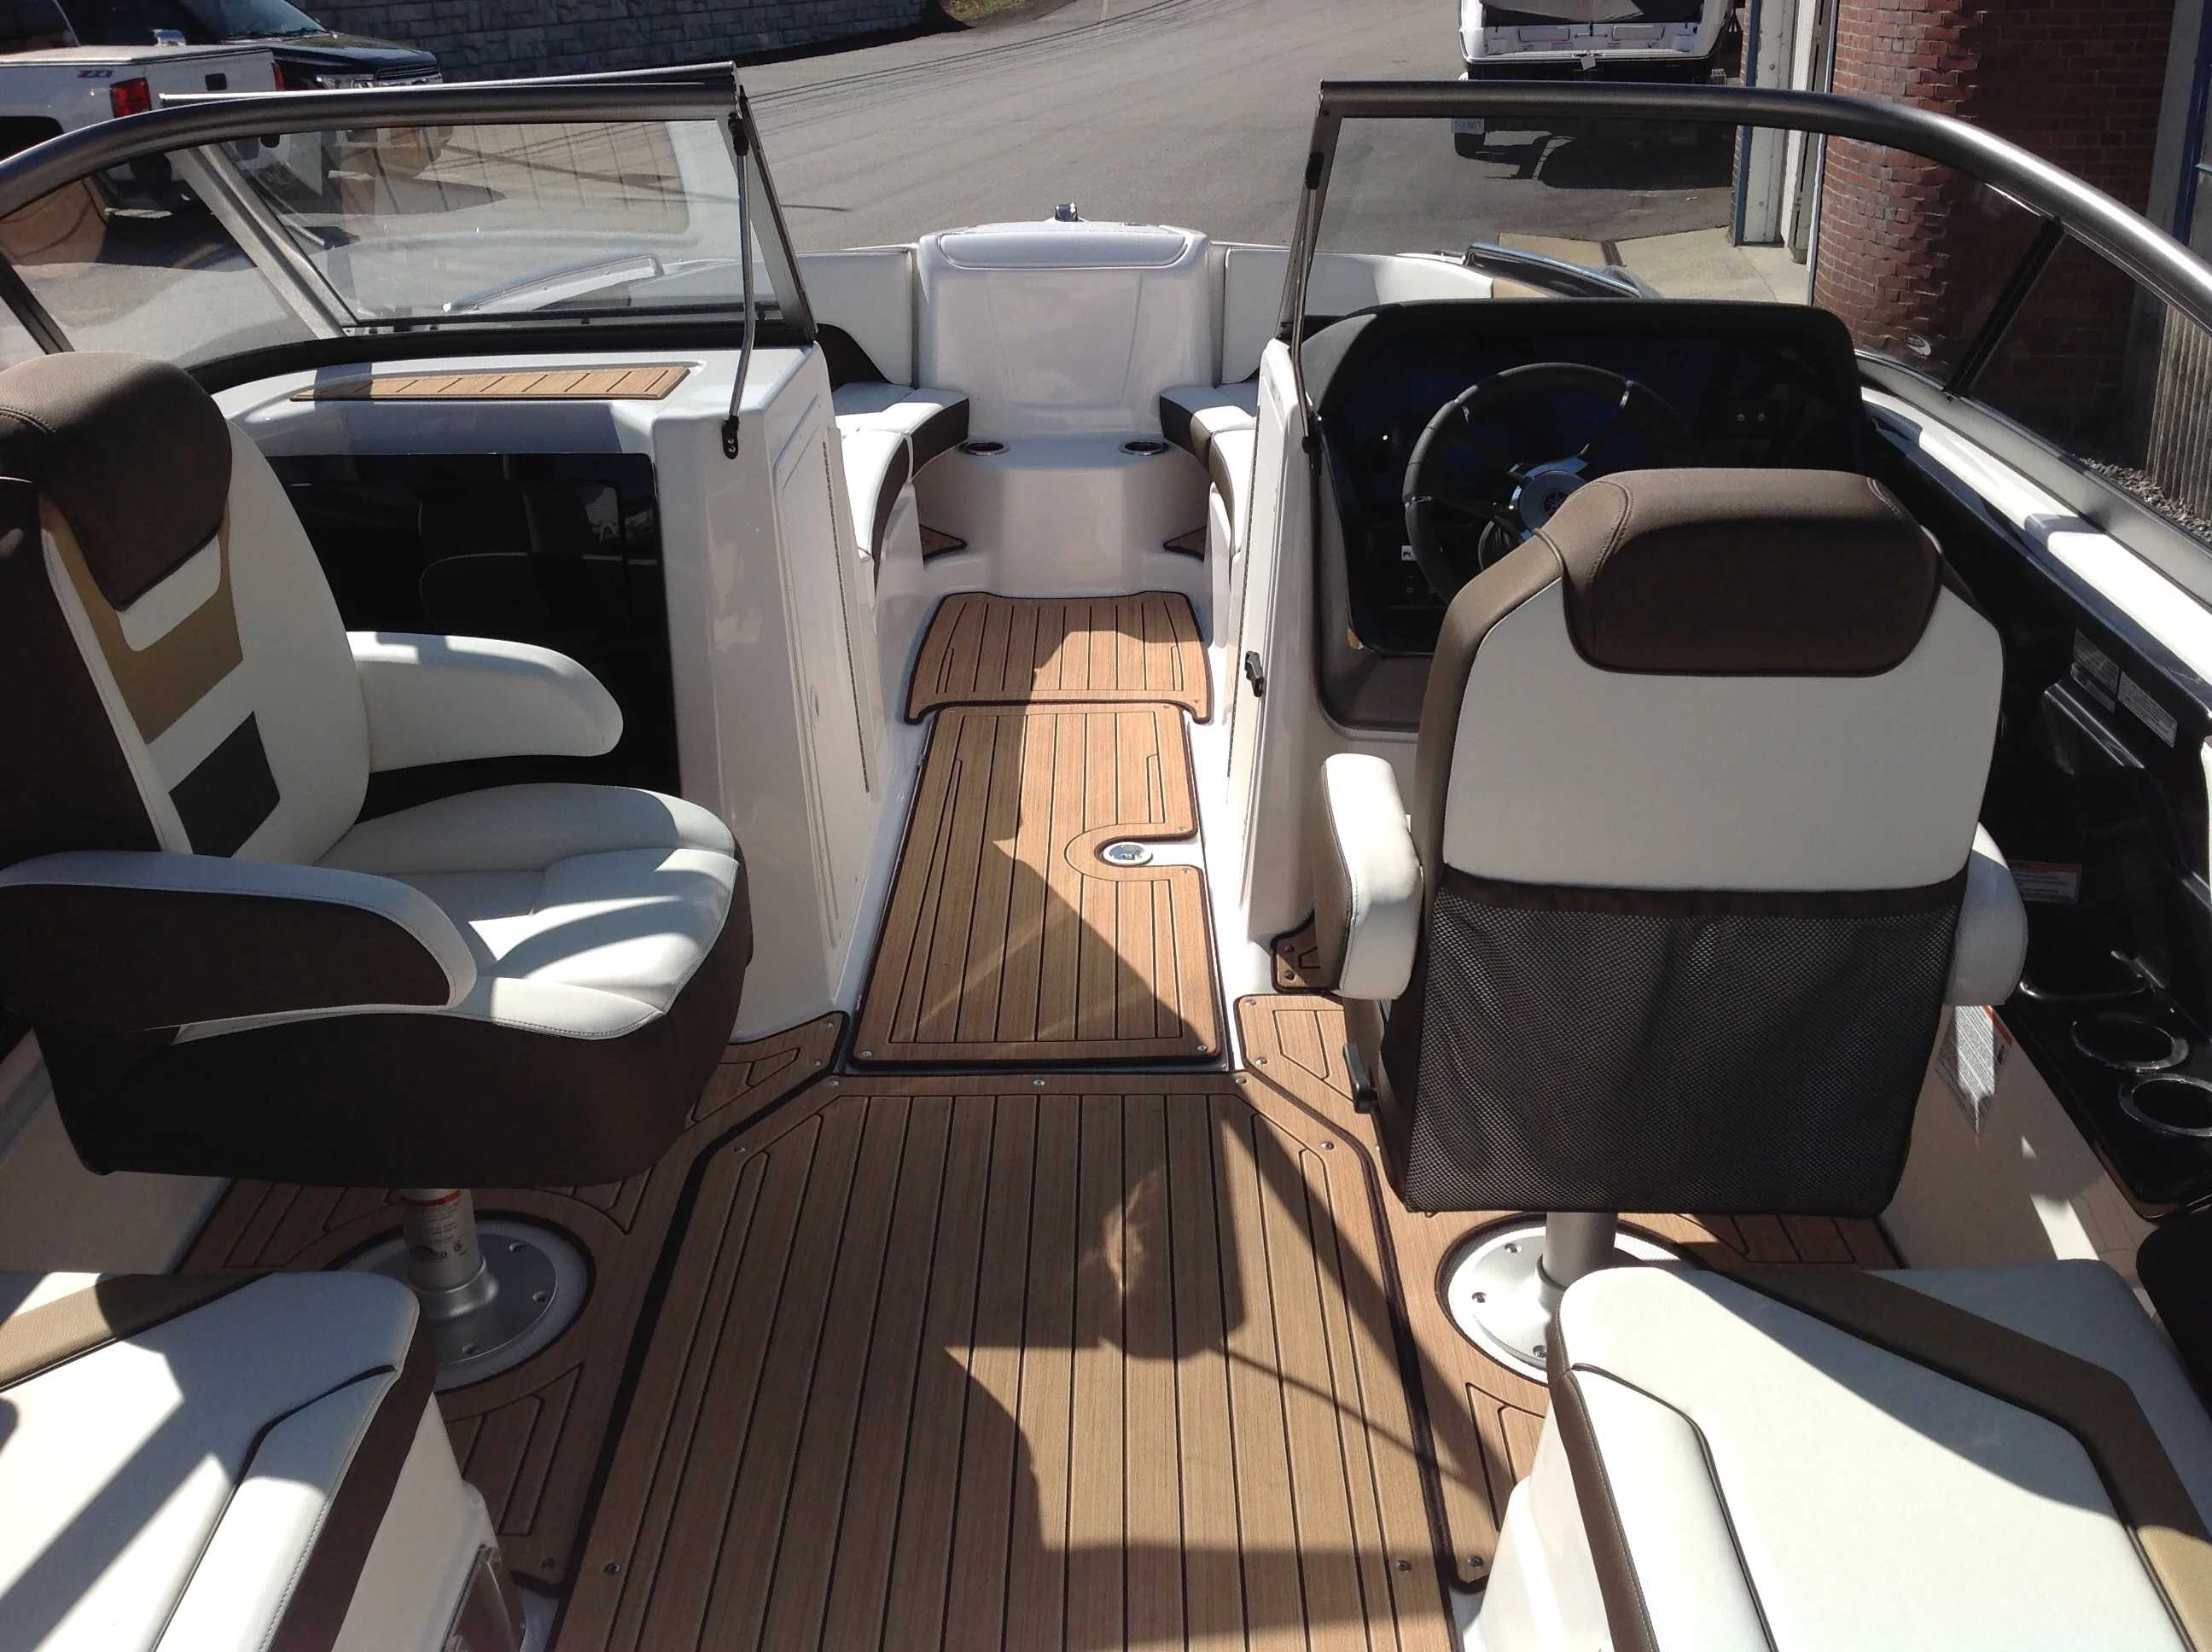 2021 Yamaha boat for sale, model of the boat is 212se & Image # 12 of 14